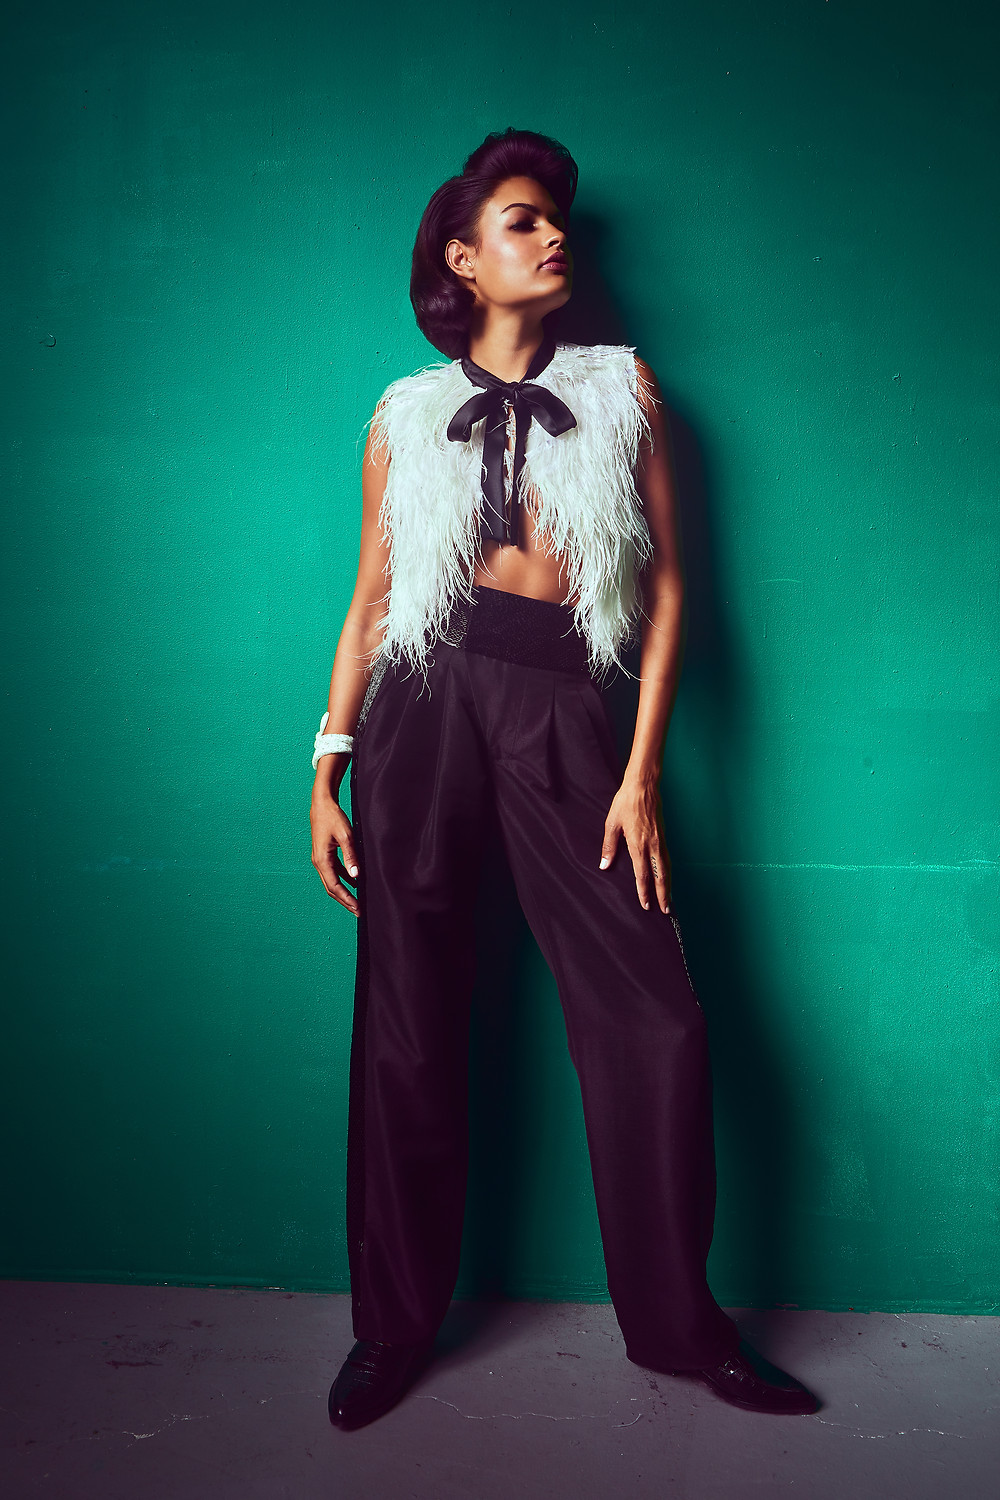 Fashion model Sianna Nelson for Elegant Magazine by Patrick Patton, wearing: Cream feather top w black bow – Farah Al Mesbah @farahalmesbahofficial Black beaded trousers – Rajo Laurel @houseoflaurel Black Loafers –Rebecca Minkof